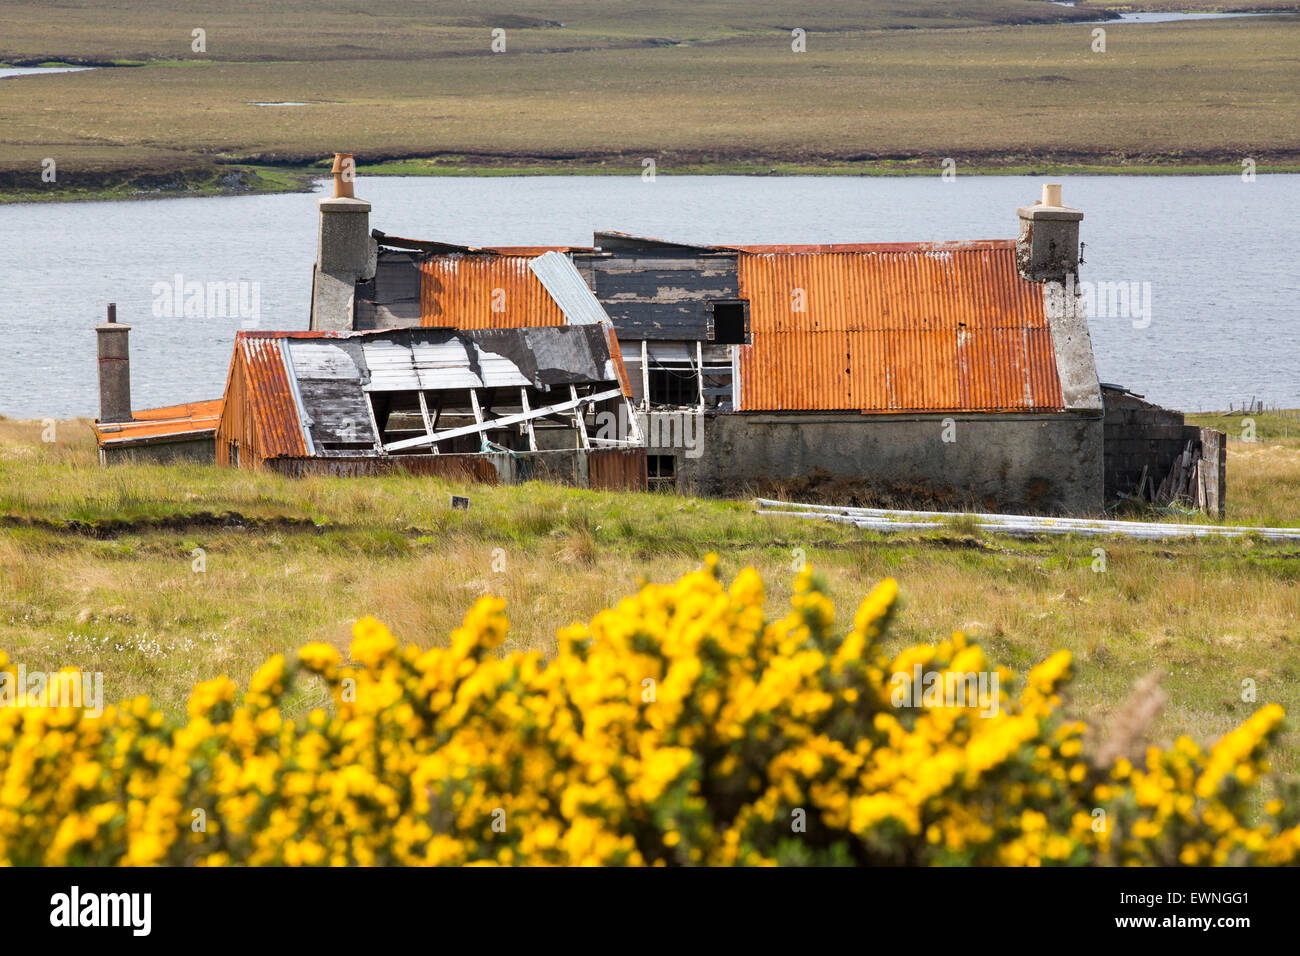 An old old abandoned croft house at Achmore on the Isle of Lewis, Outer Hebrides, Scotland, UK. - Stock Image